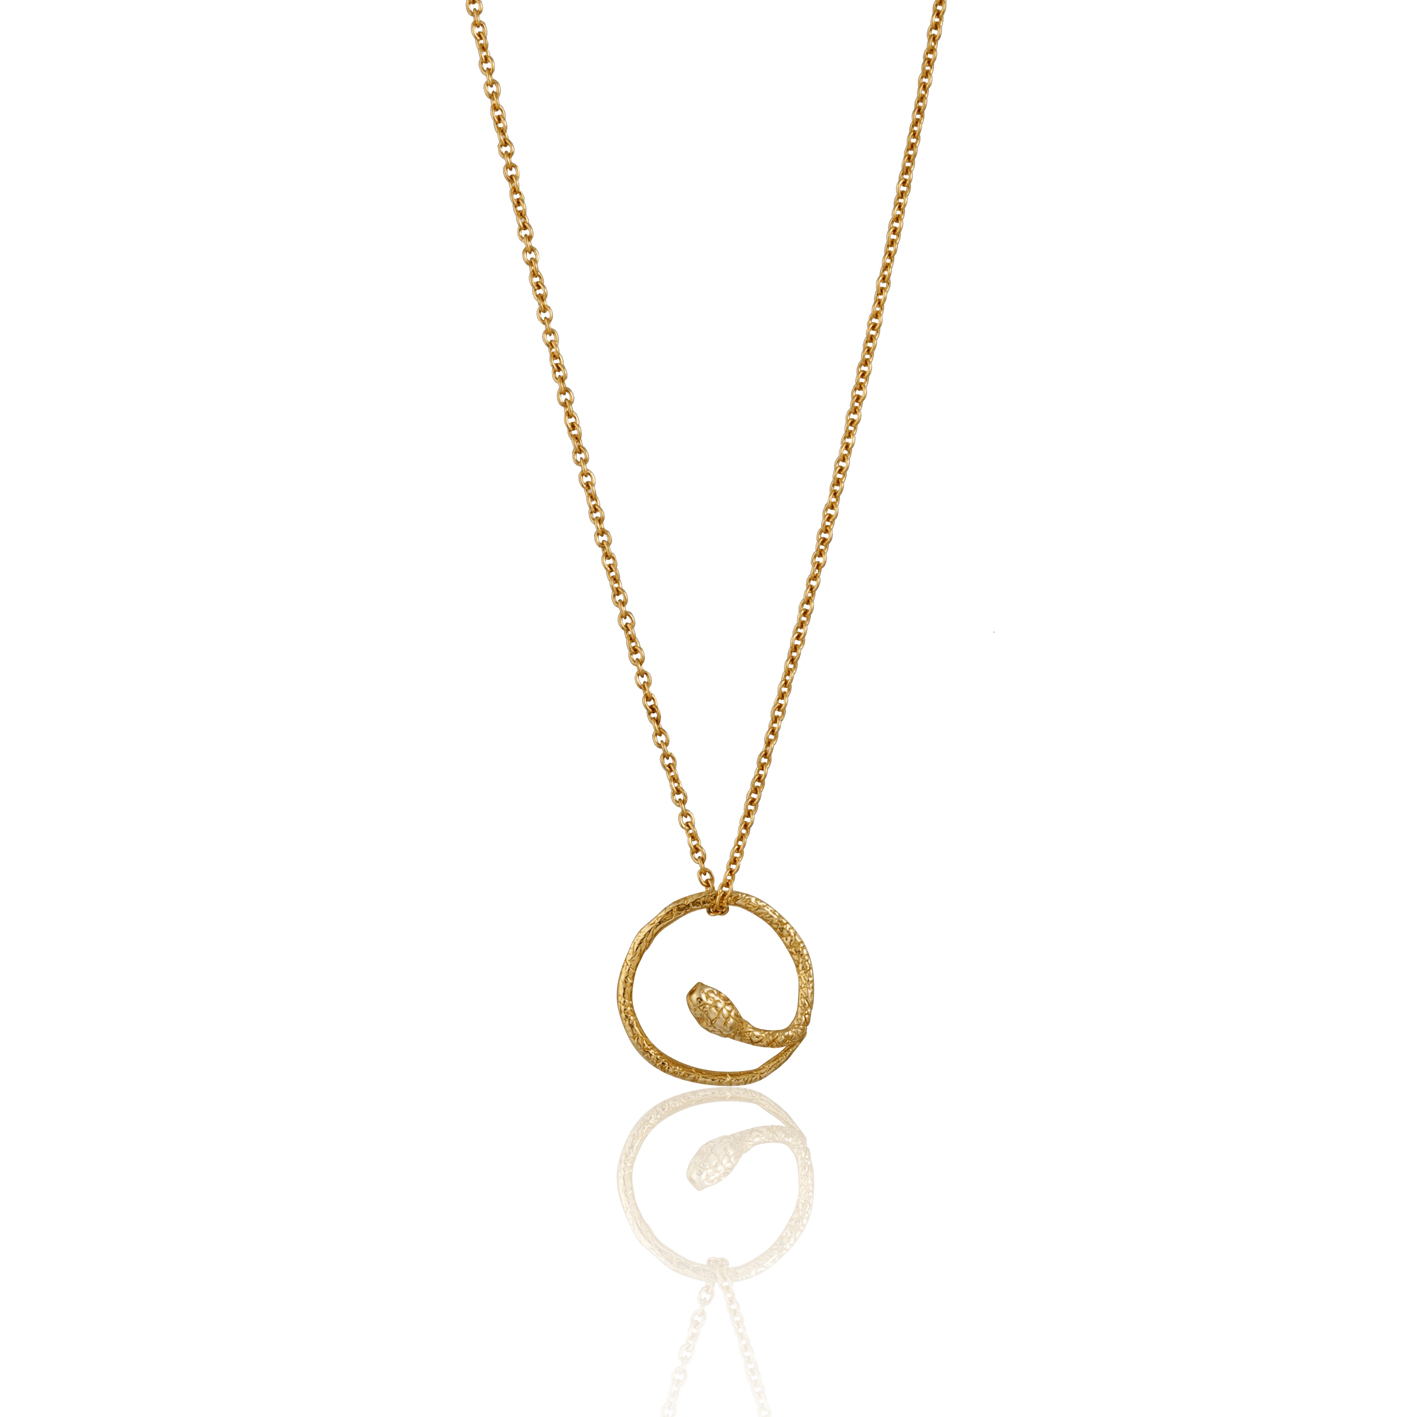 Momocreatura gold round snake necklace.jpg